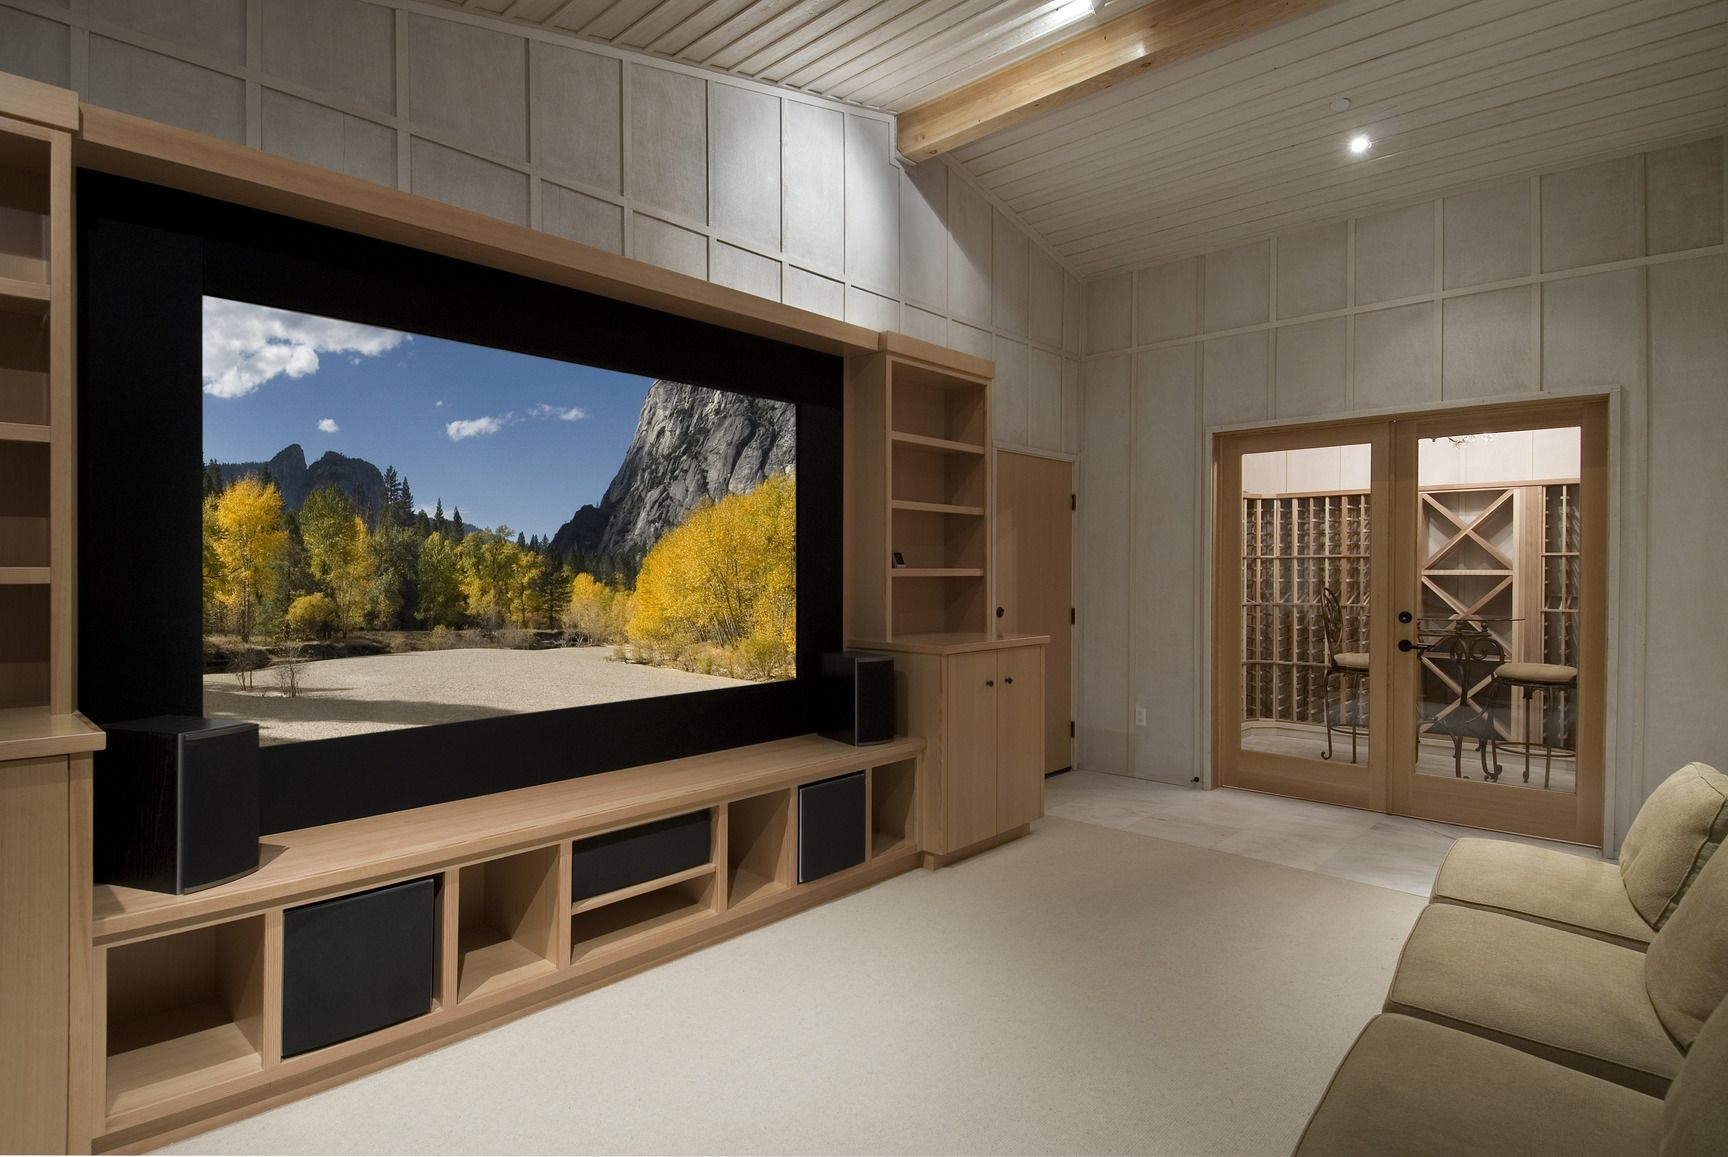 Media Room Design Has Evolved With New Technologies And Uses. Learn What To  Consider To Get The Most Out Of Your New Media Room.